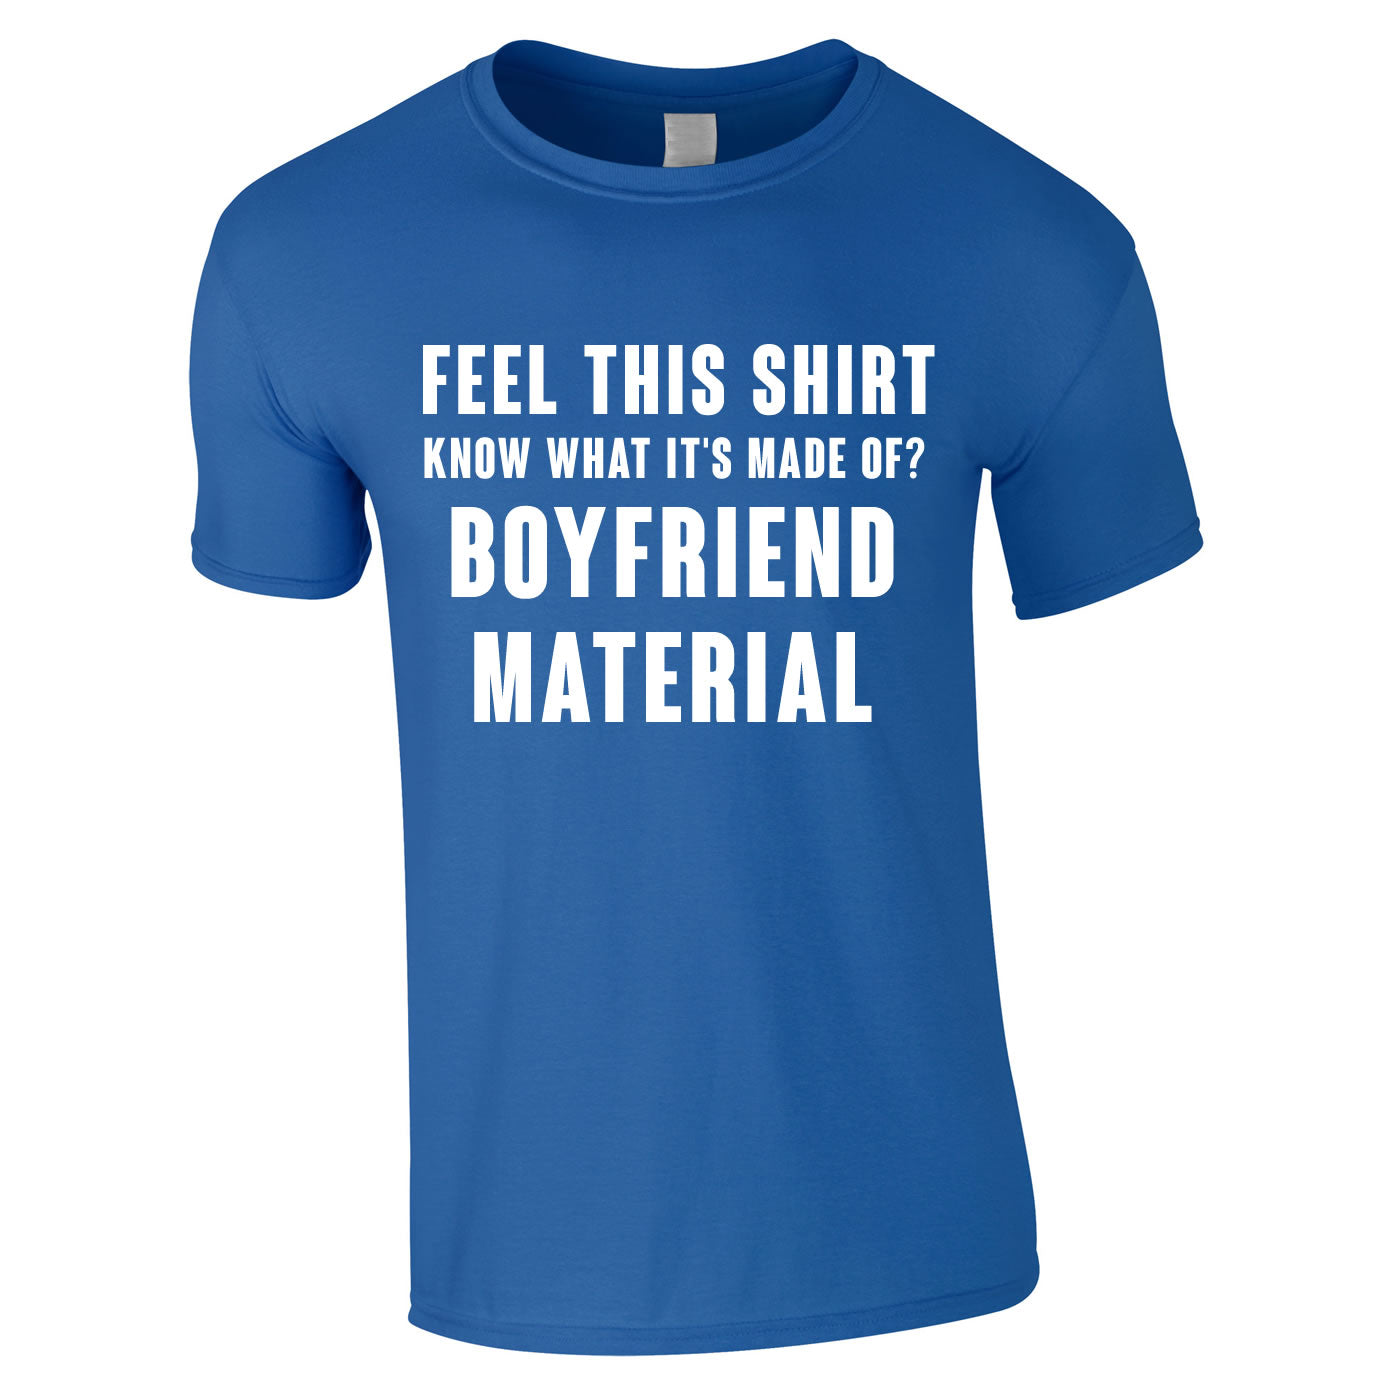 Feel This Shirt, Know What It's Made Of? Boyfriend Material